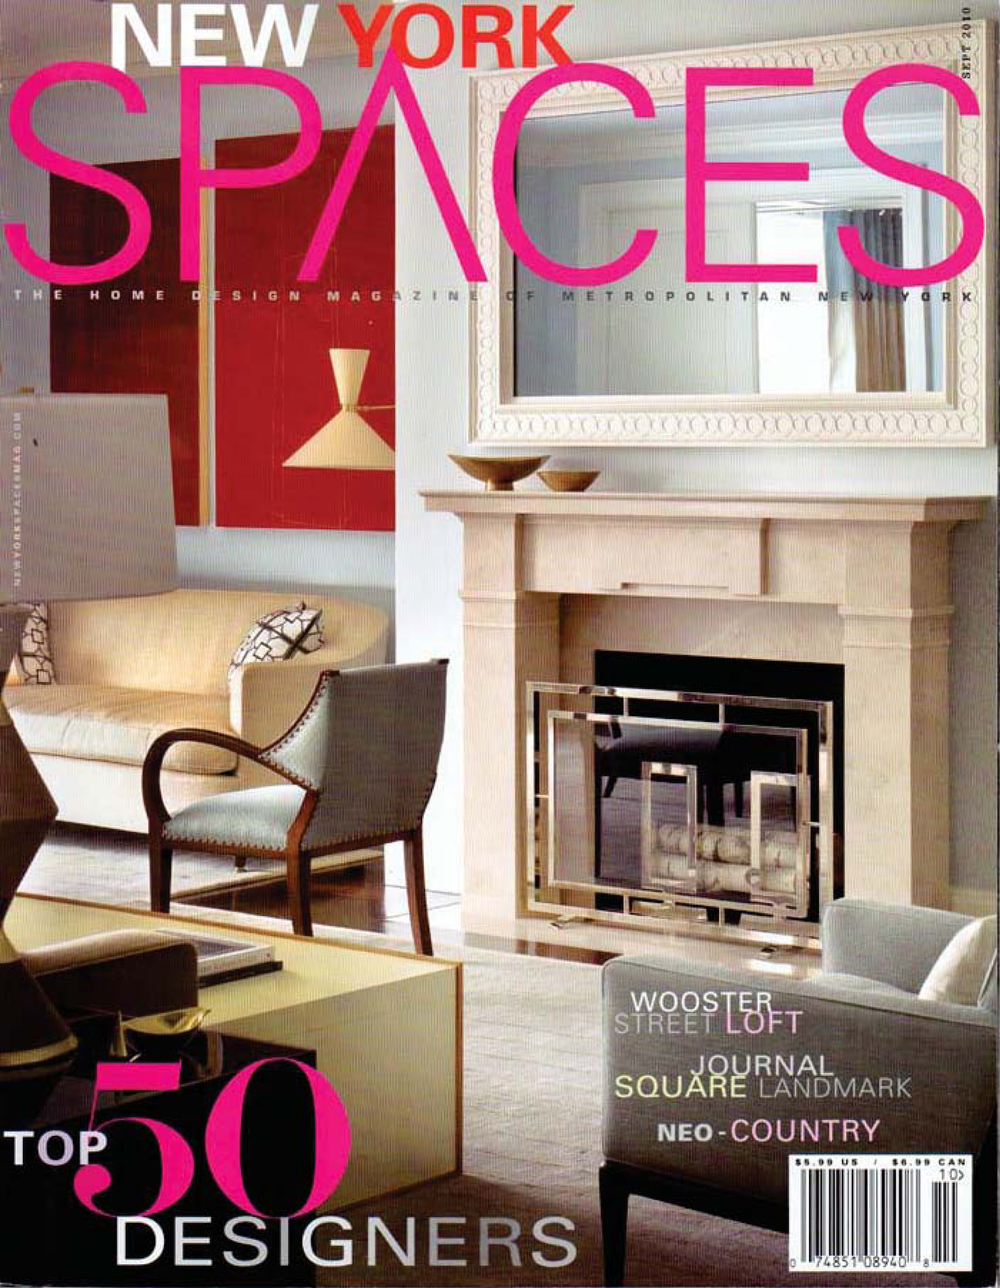 New_York_Spaces_2010_Top_50_Designers 1.jpg